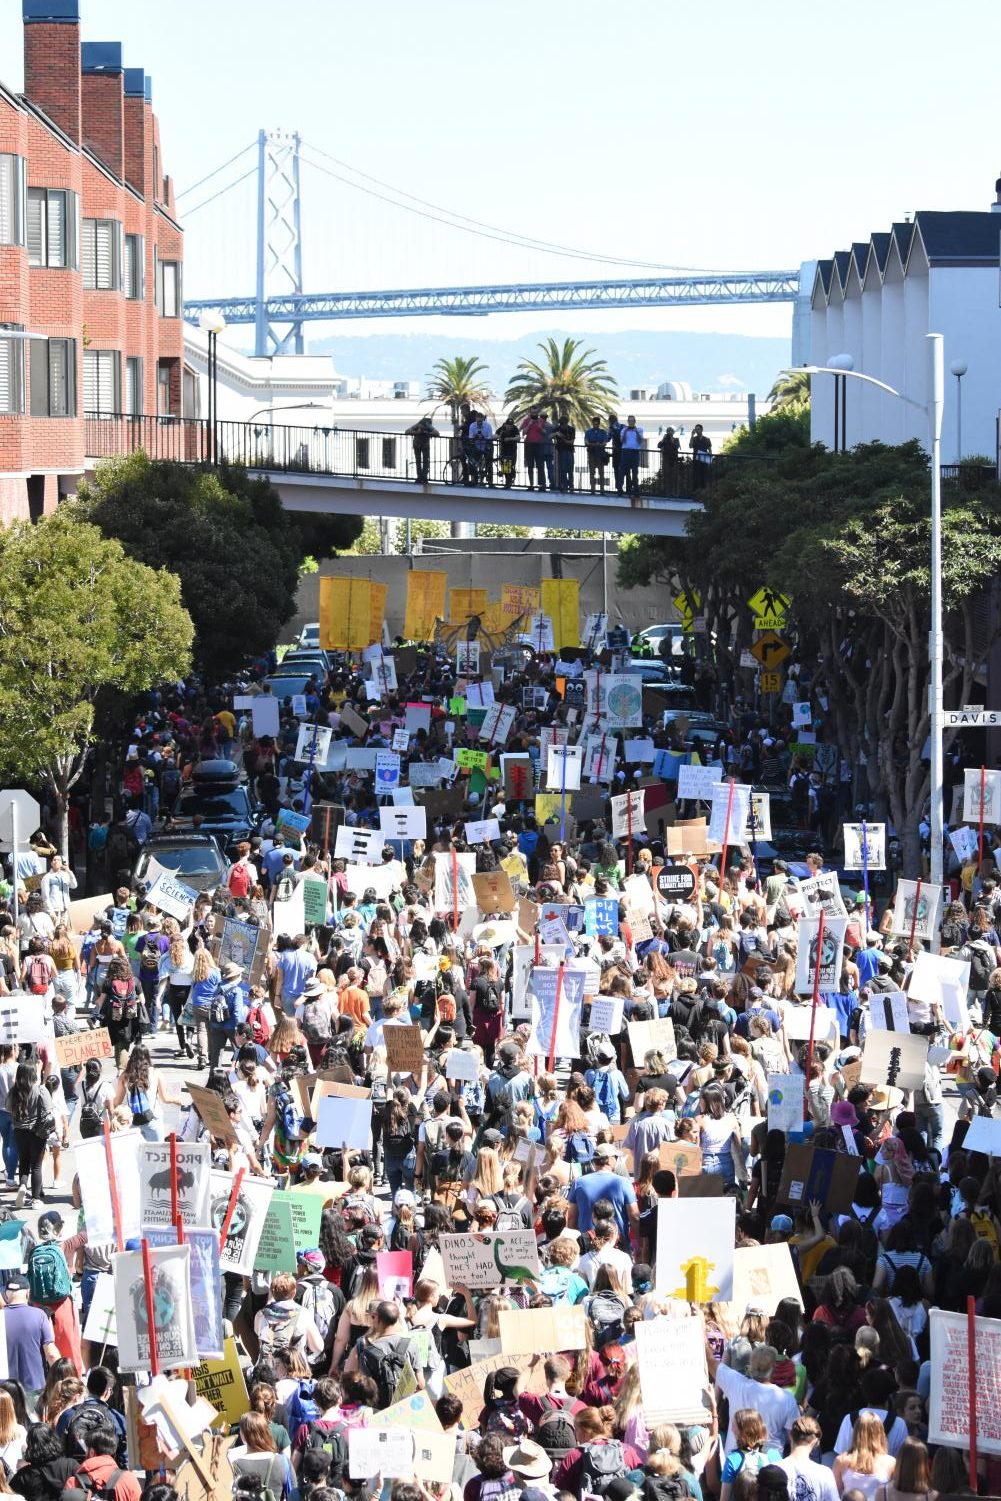 Around 30,000 people marched in San Francisco as part of an international protest over climate justice  on Friday.